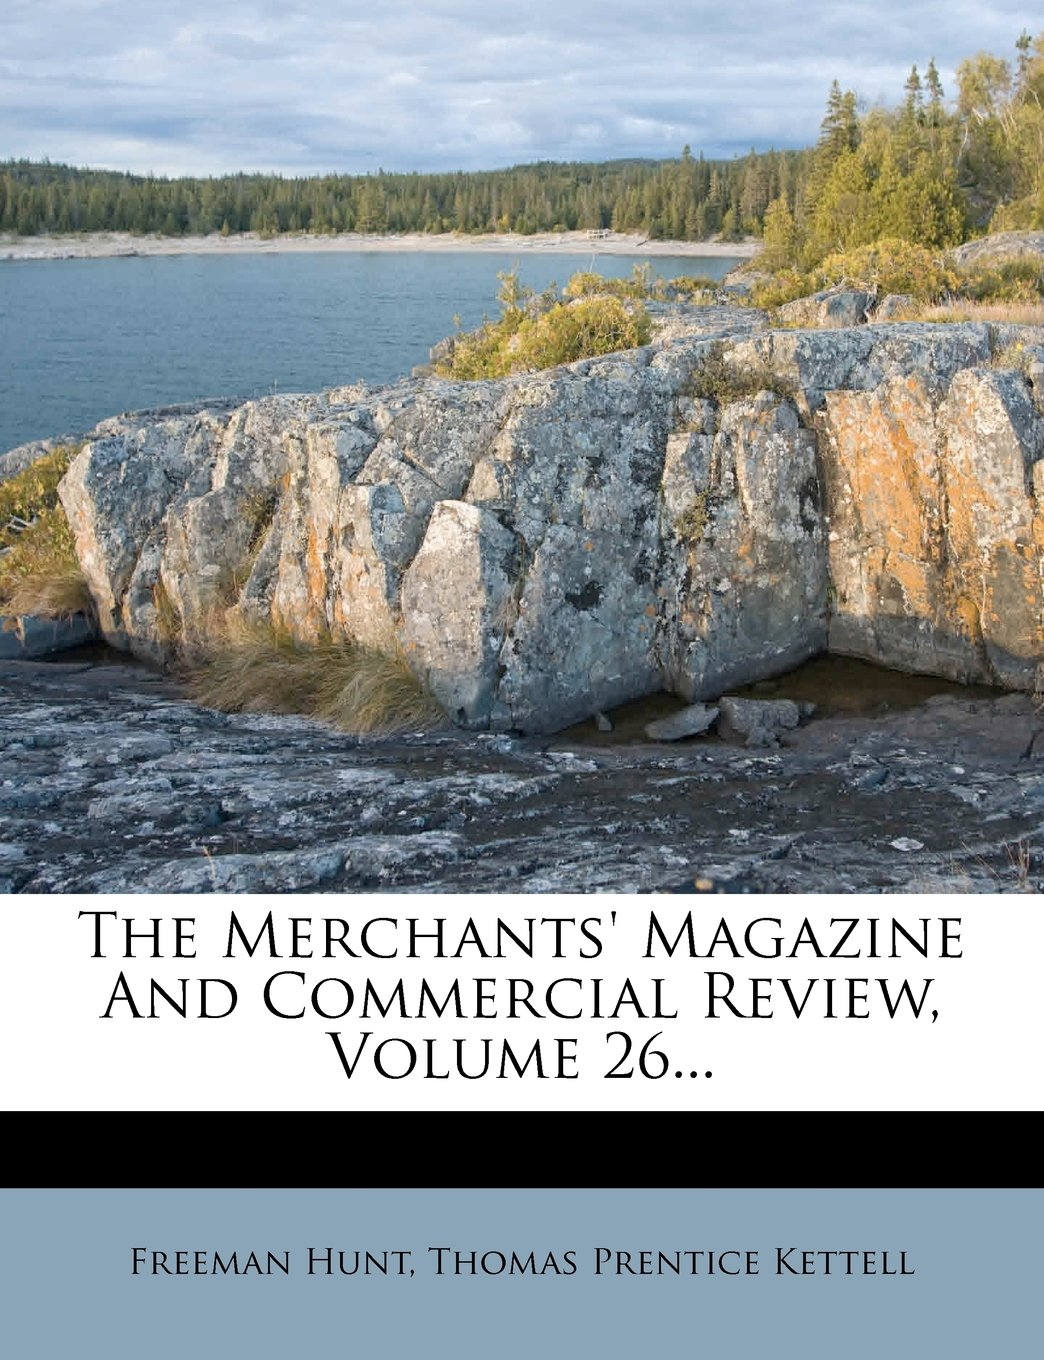 The Merchants' Magazine And Commercial Review, Volume 26... ebook